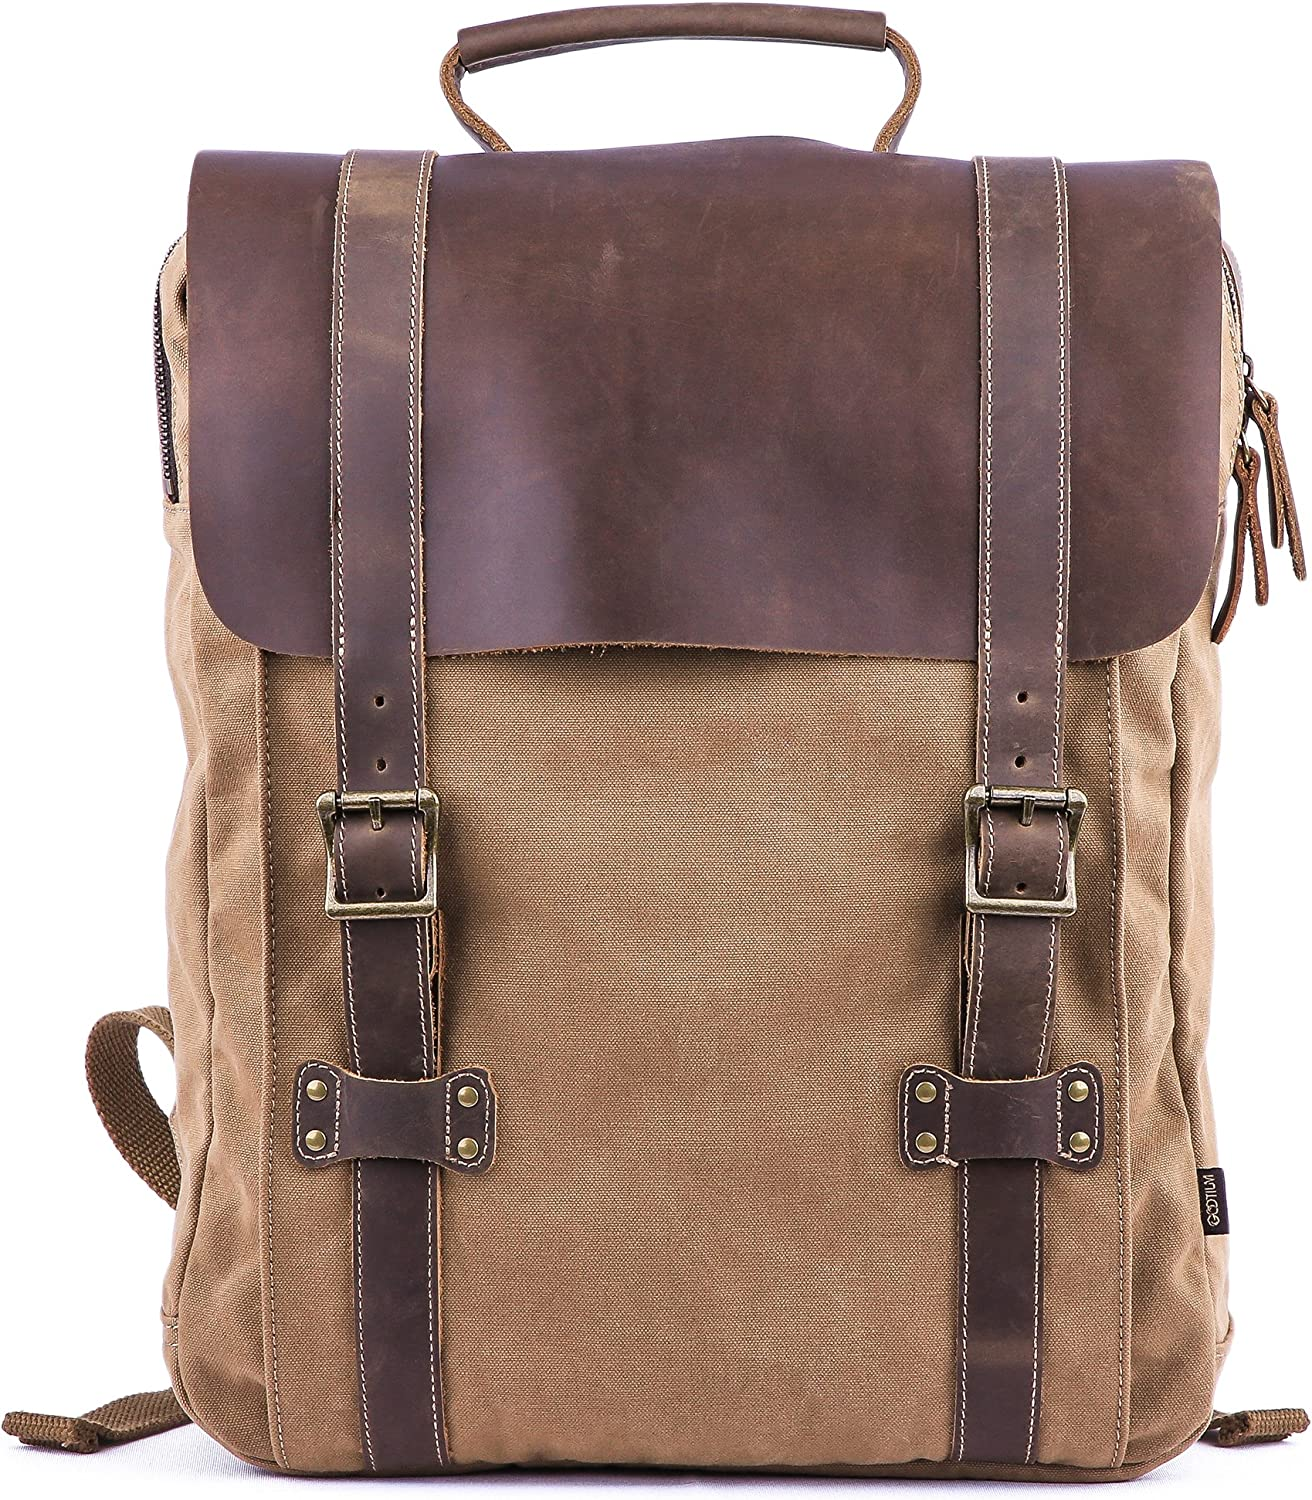 Gootium Leather Canvas Backpack - Vintage Travel Day Pack Unisex Rucksack, Coffee